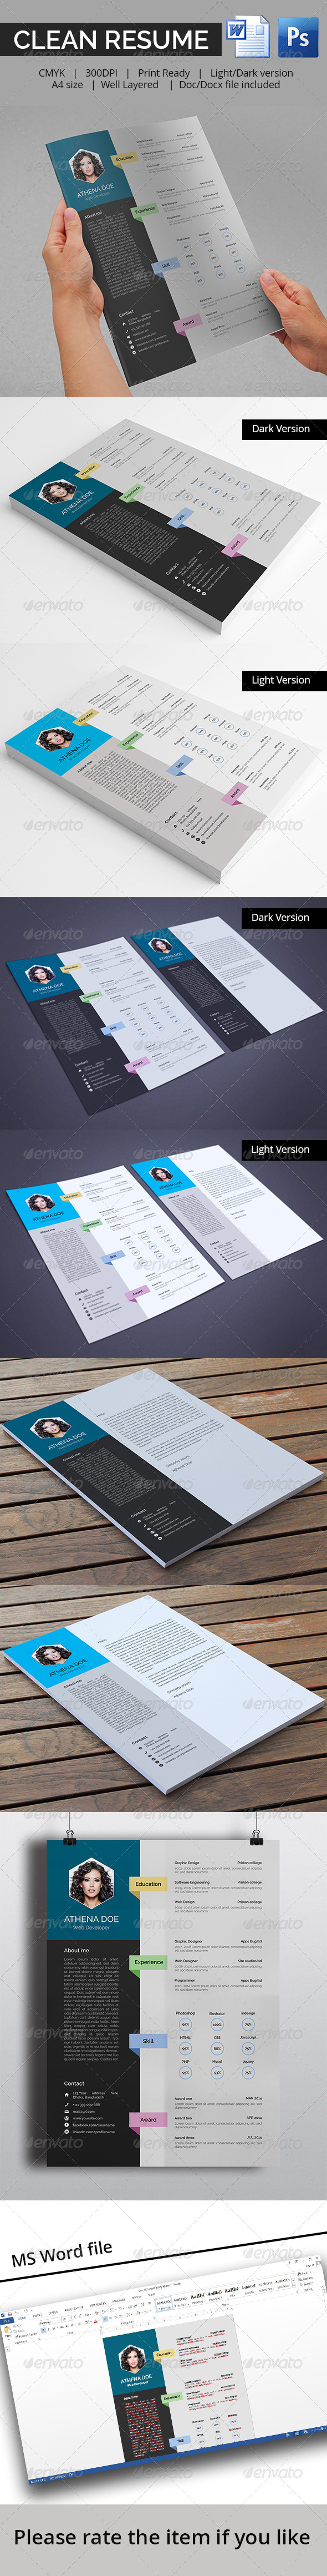 GraphicRiver Clean Resume With MS Word 8563624